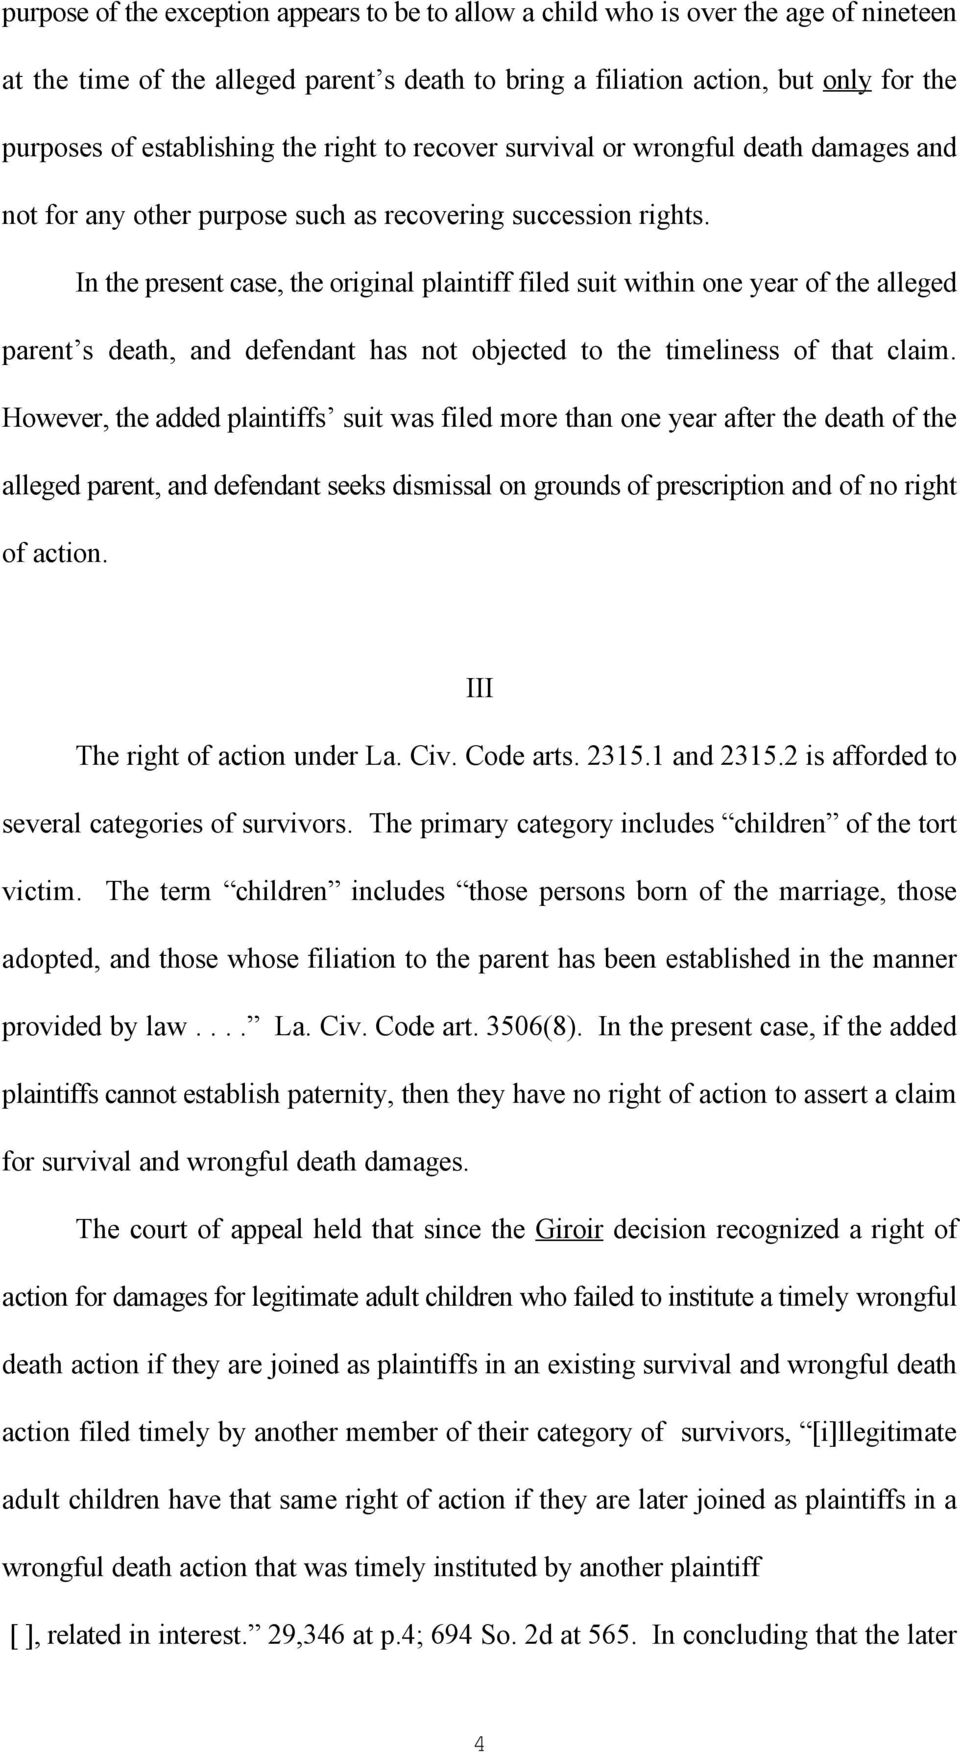 In the present case, the original plaintiff filed suit within one year of the alleged parent s death, and defendant has not objected to the timeliness of that claim.